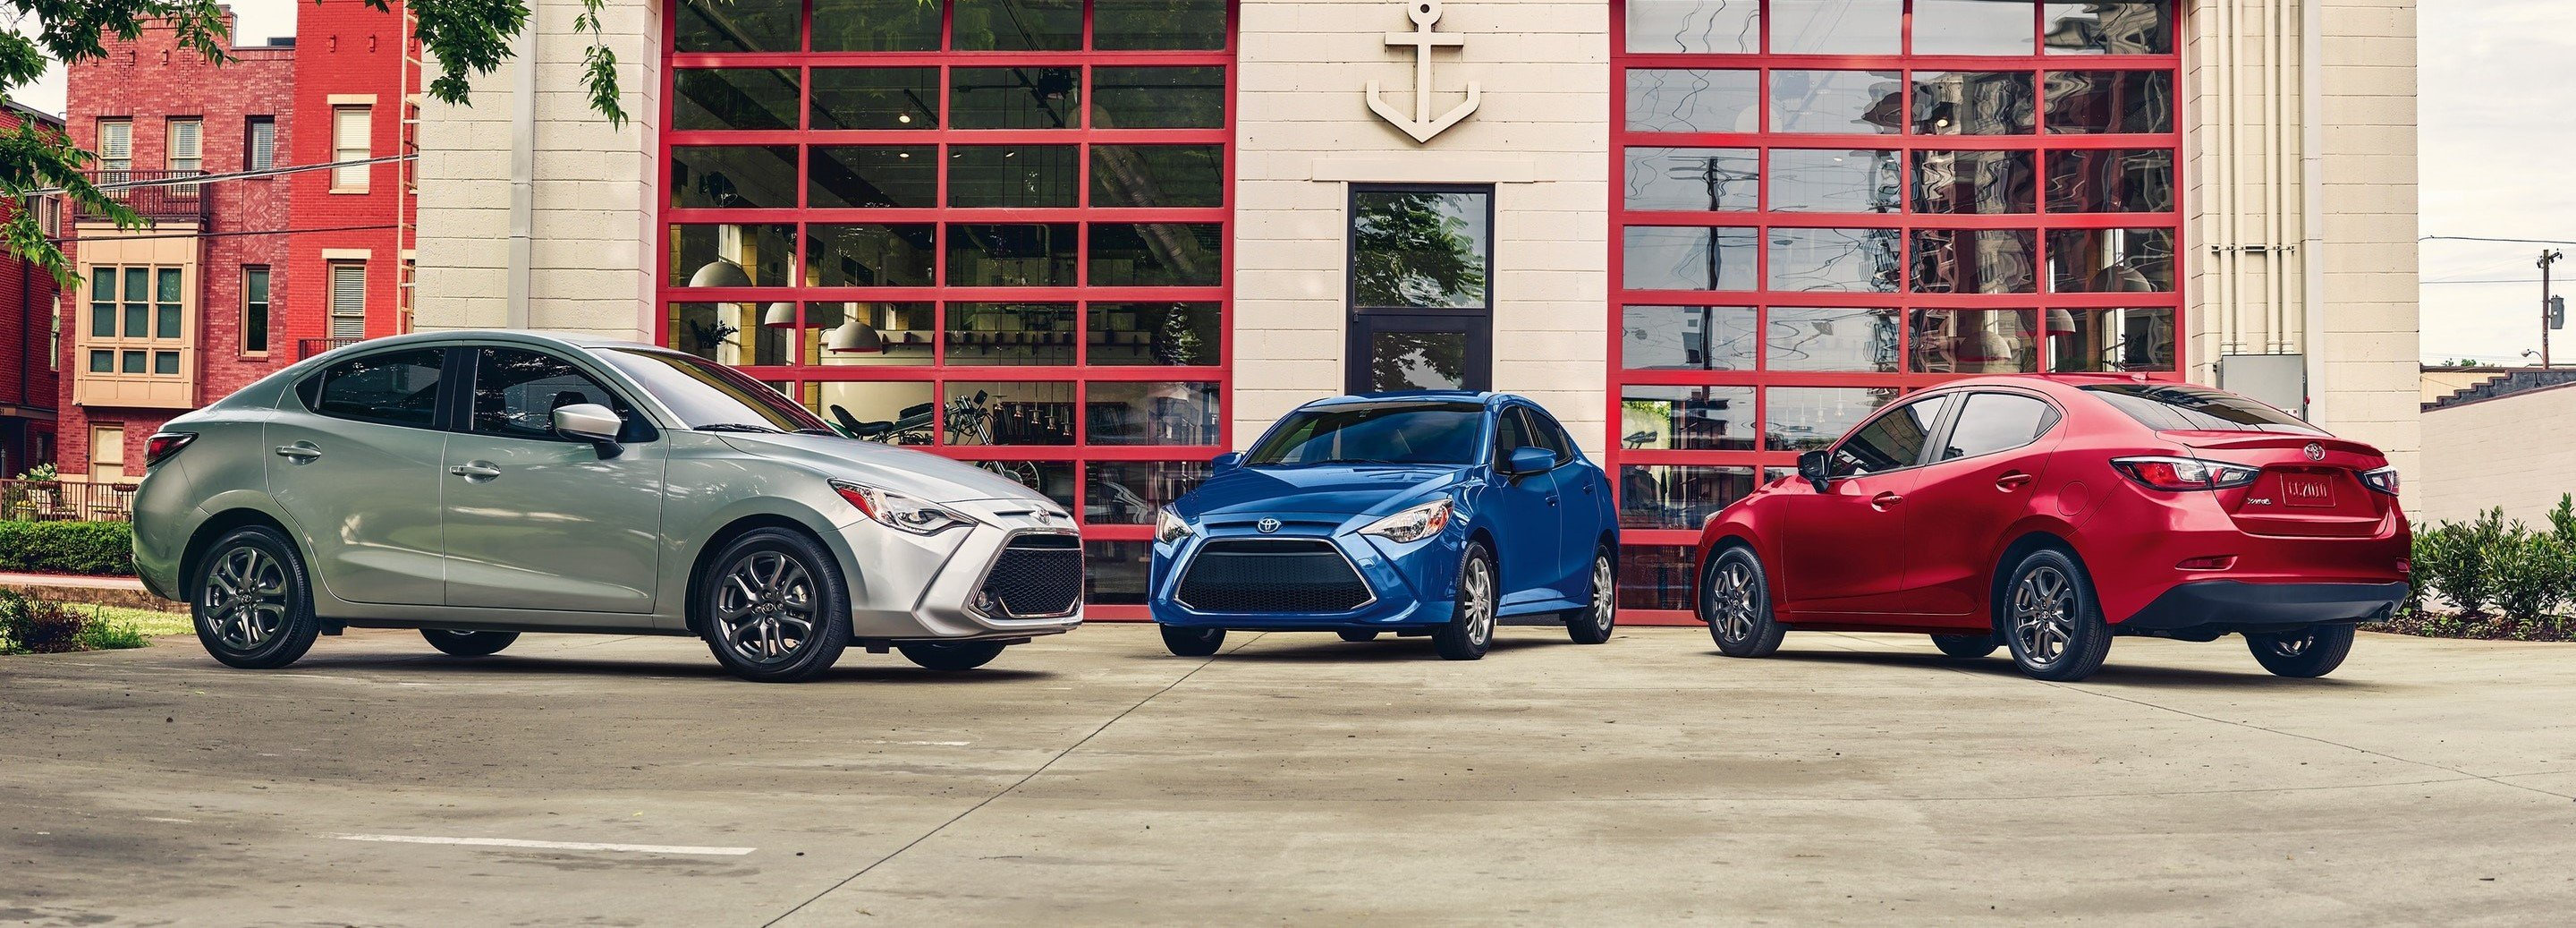 Green Toyota Springfield Il >> New Toyota Yaris Lease And Finance Offers Springfield Il Green Toyota